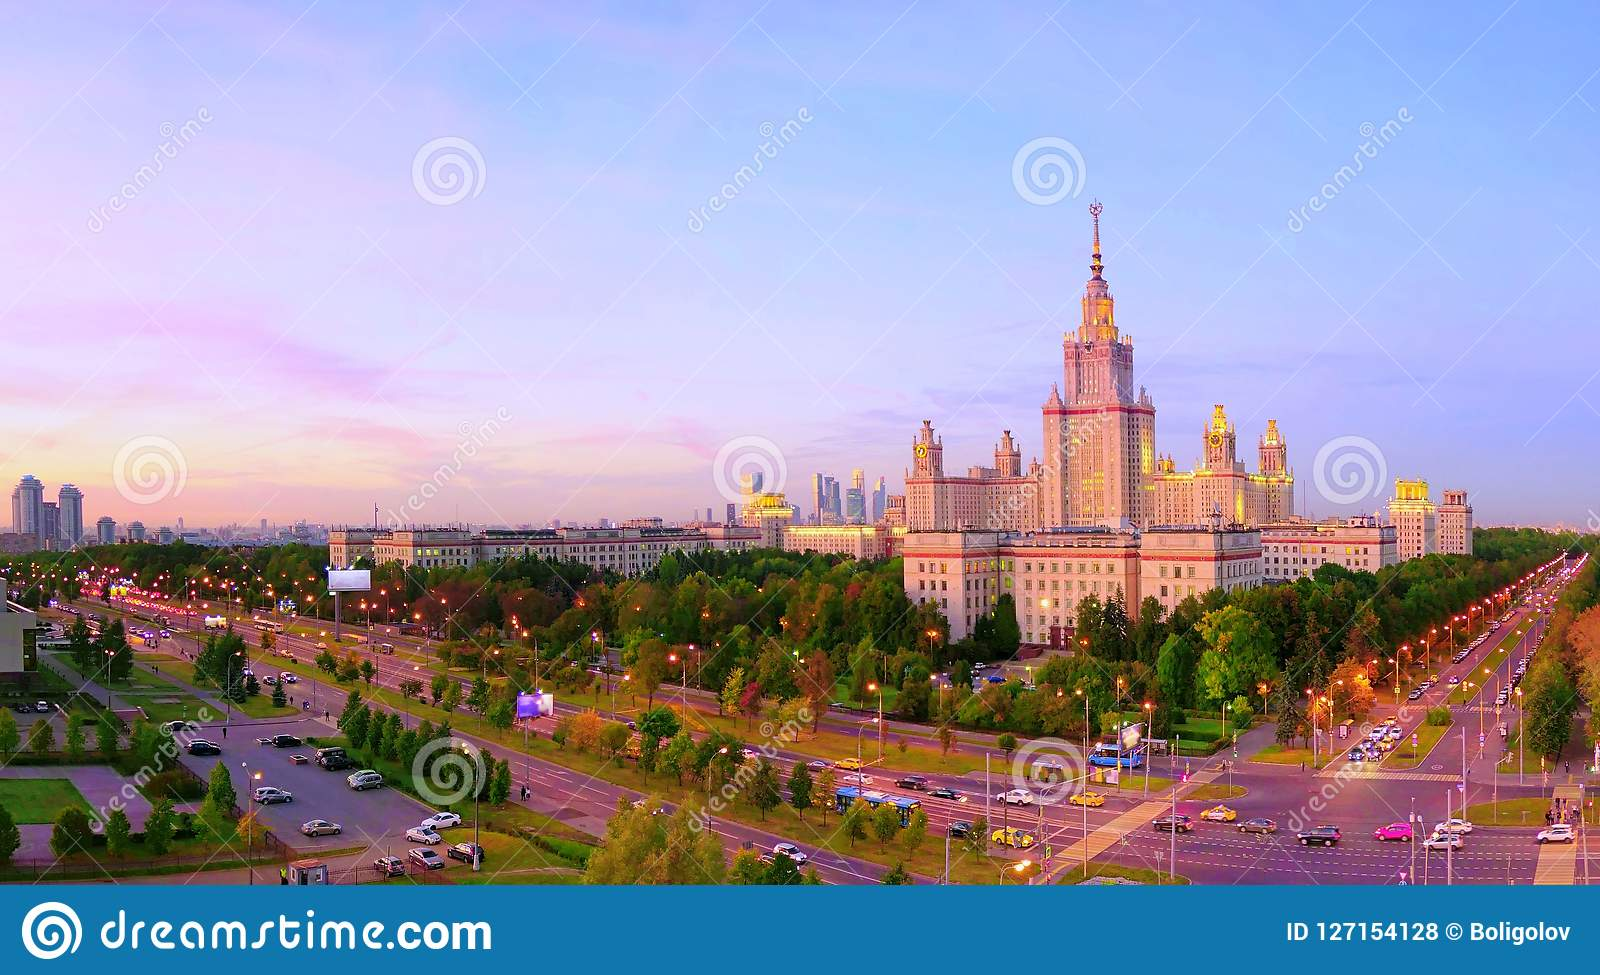 Sunset Campus Of Famous Russian University Stock Photo - Image of